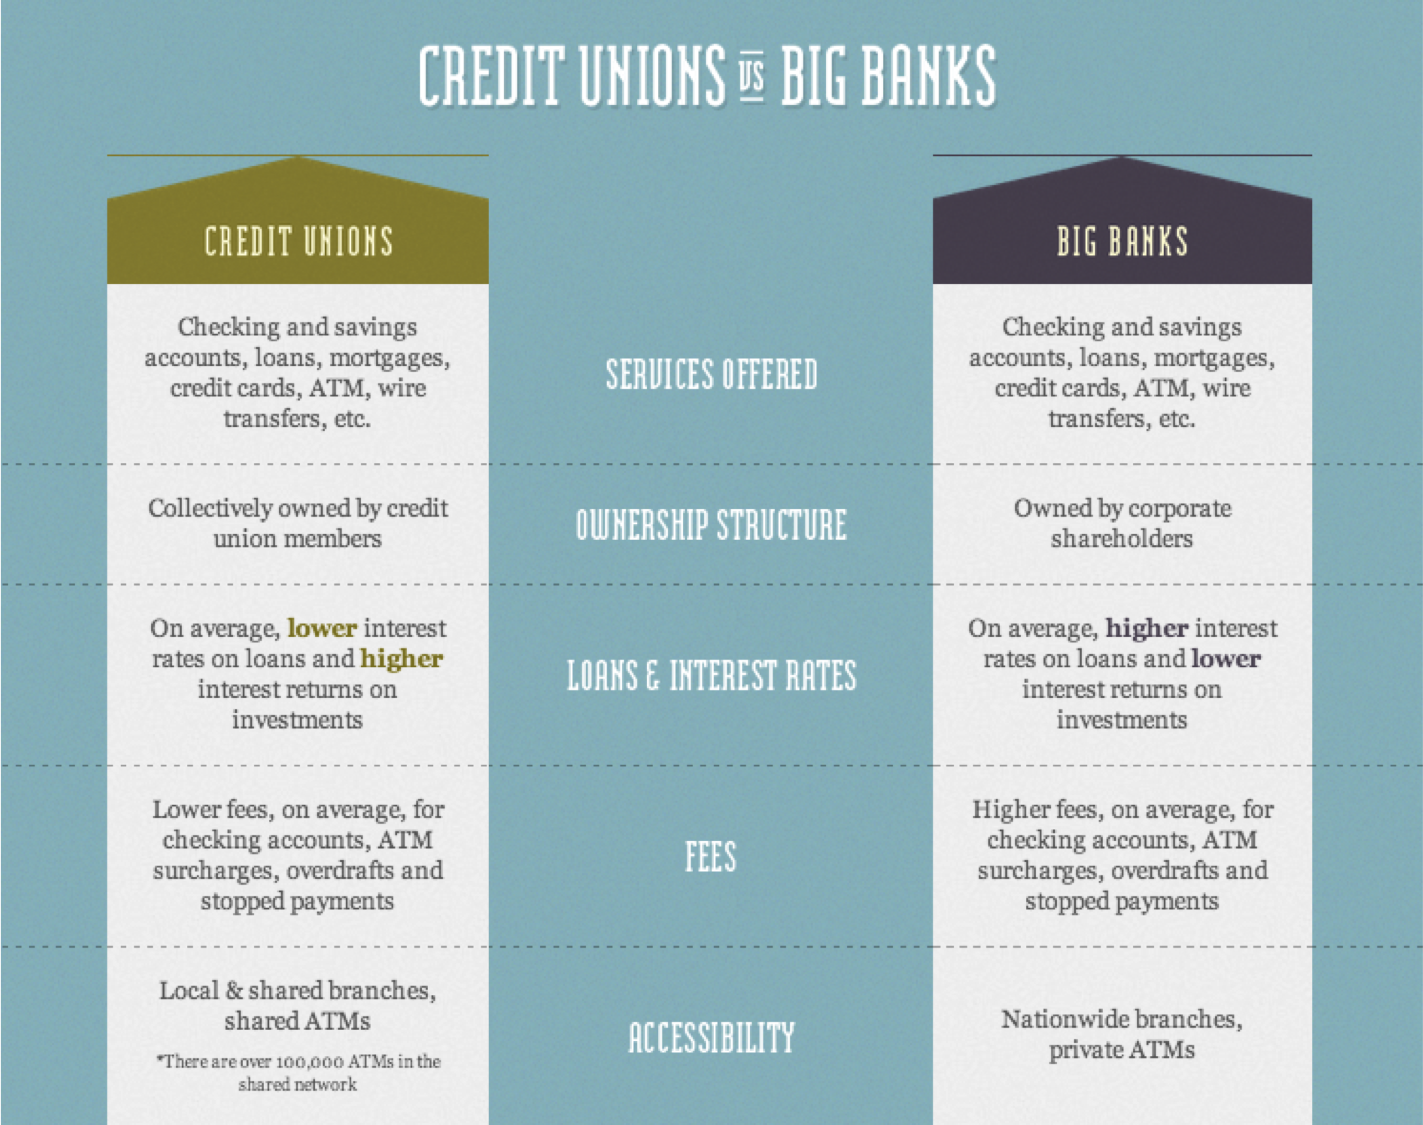 description of credit unions vs. big banks